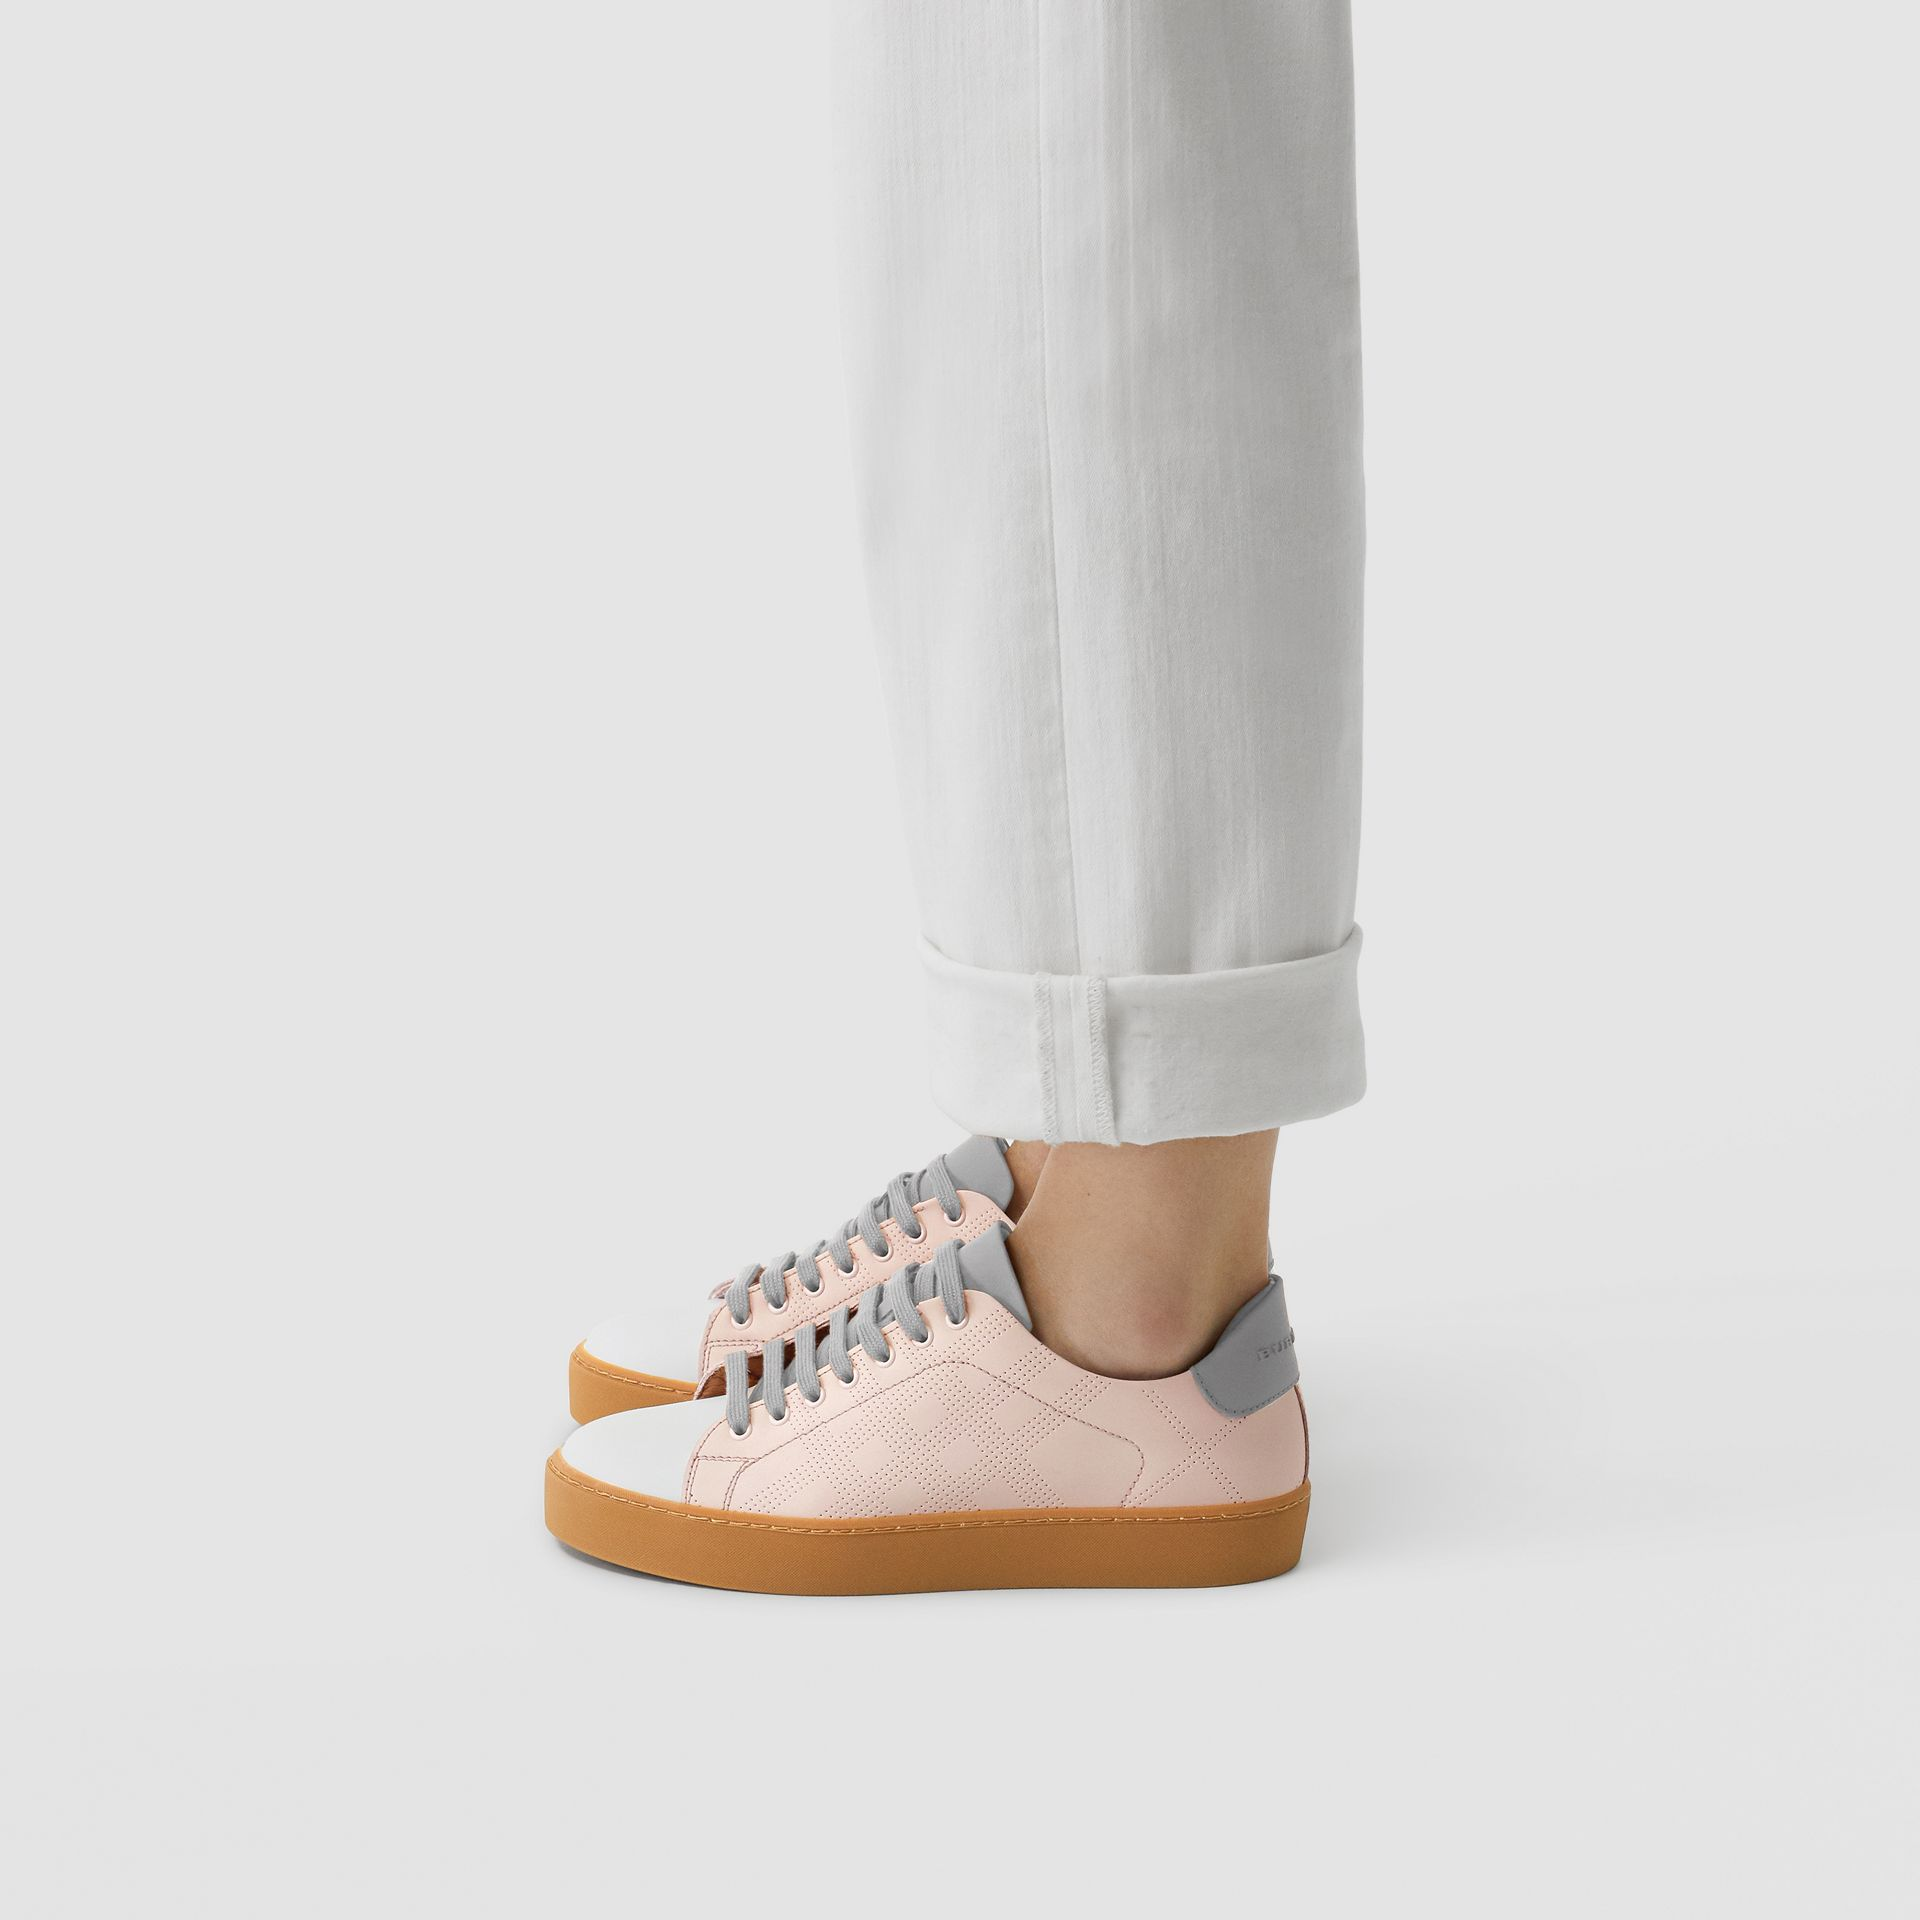 Tri-tone Perforated Check Leather Sneakers in Pale Pink - Women | Burberry - gallery image 2